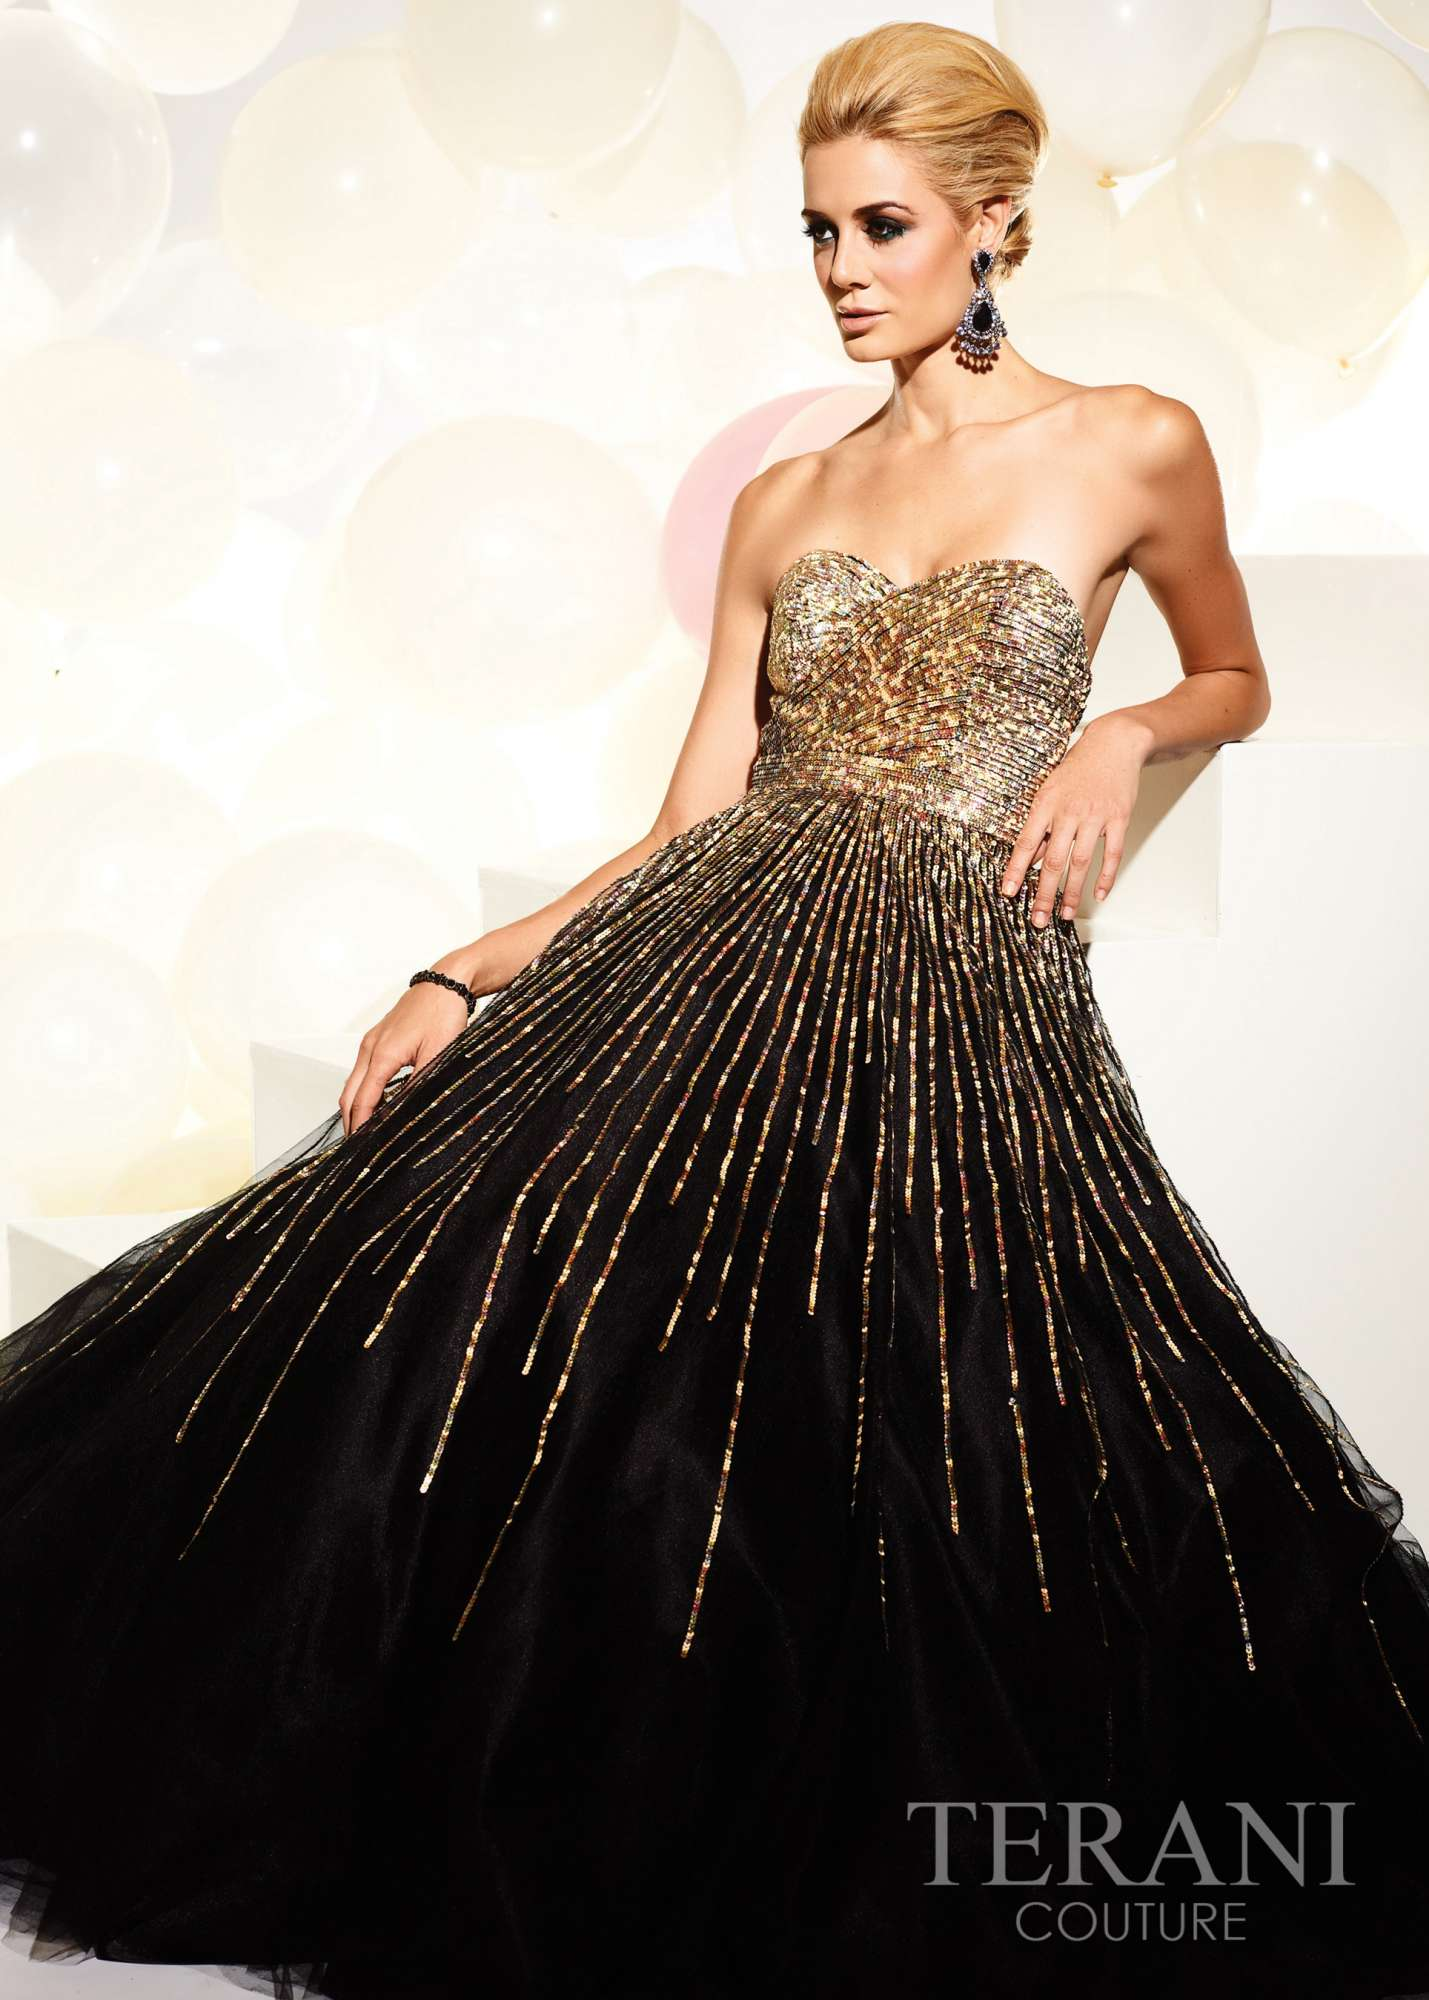 Terani 95220P - Black Sequin Tulle Ball Gown - RissyRoos.com